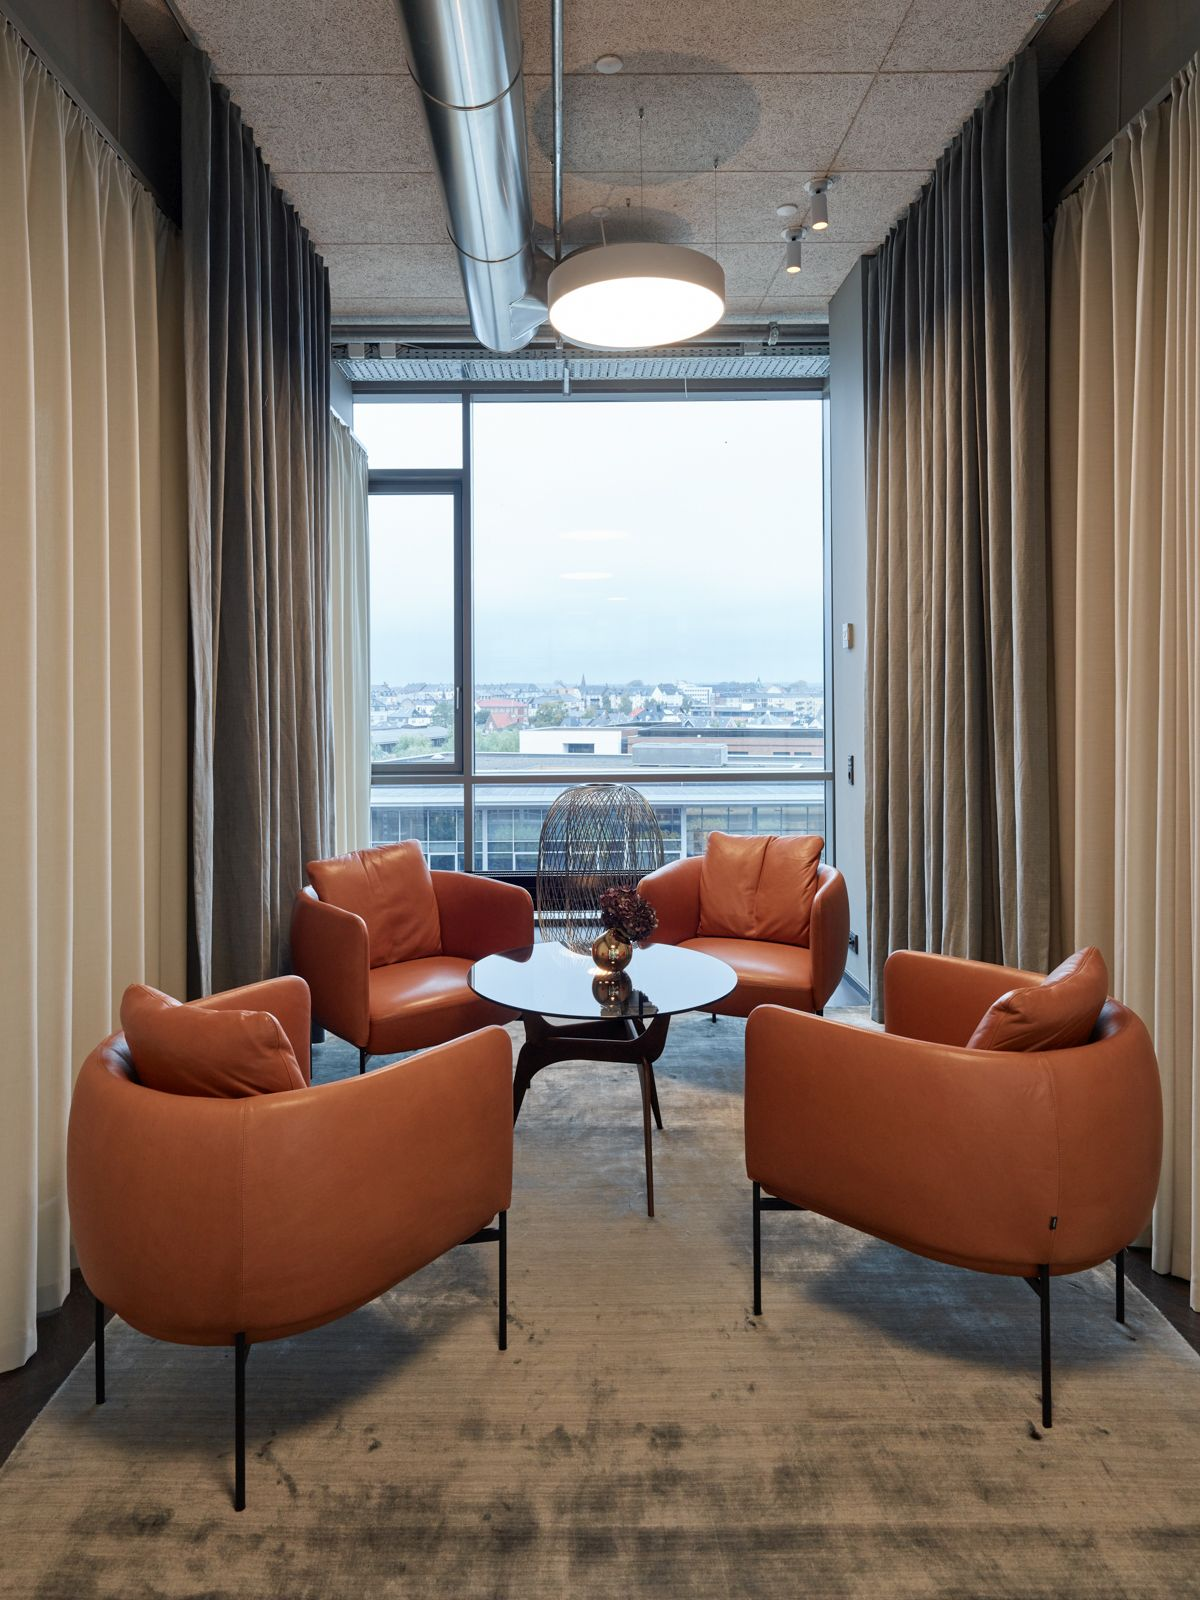 Turn the open office into a private meeting room using drapes